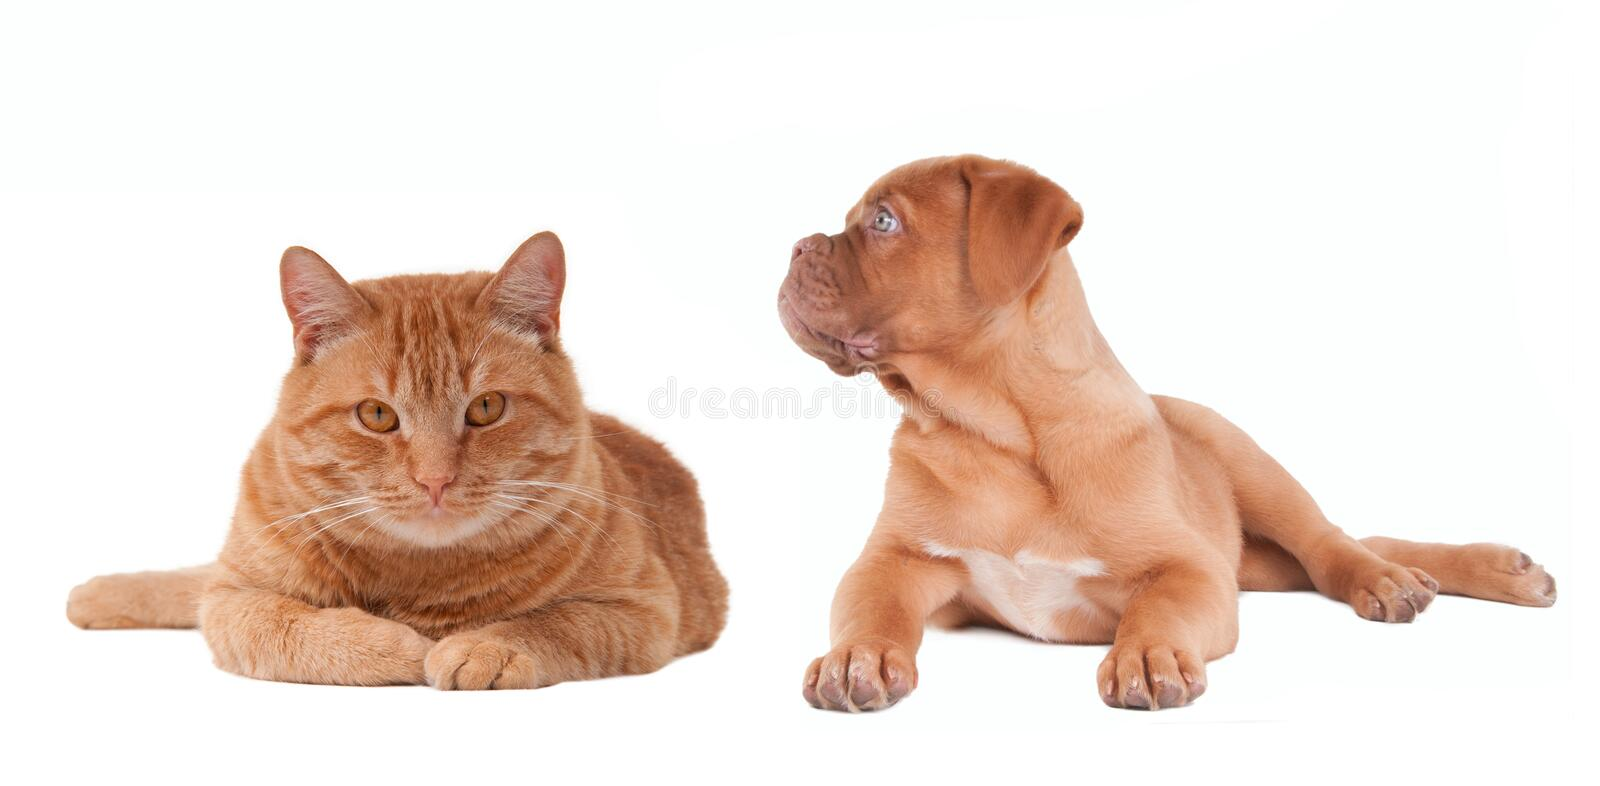 Download Puppy And Kitten Lying Next To Each Other Stock Image - Image: 17828345